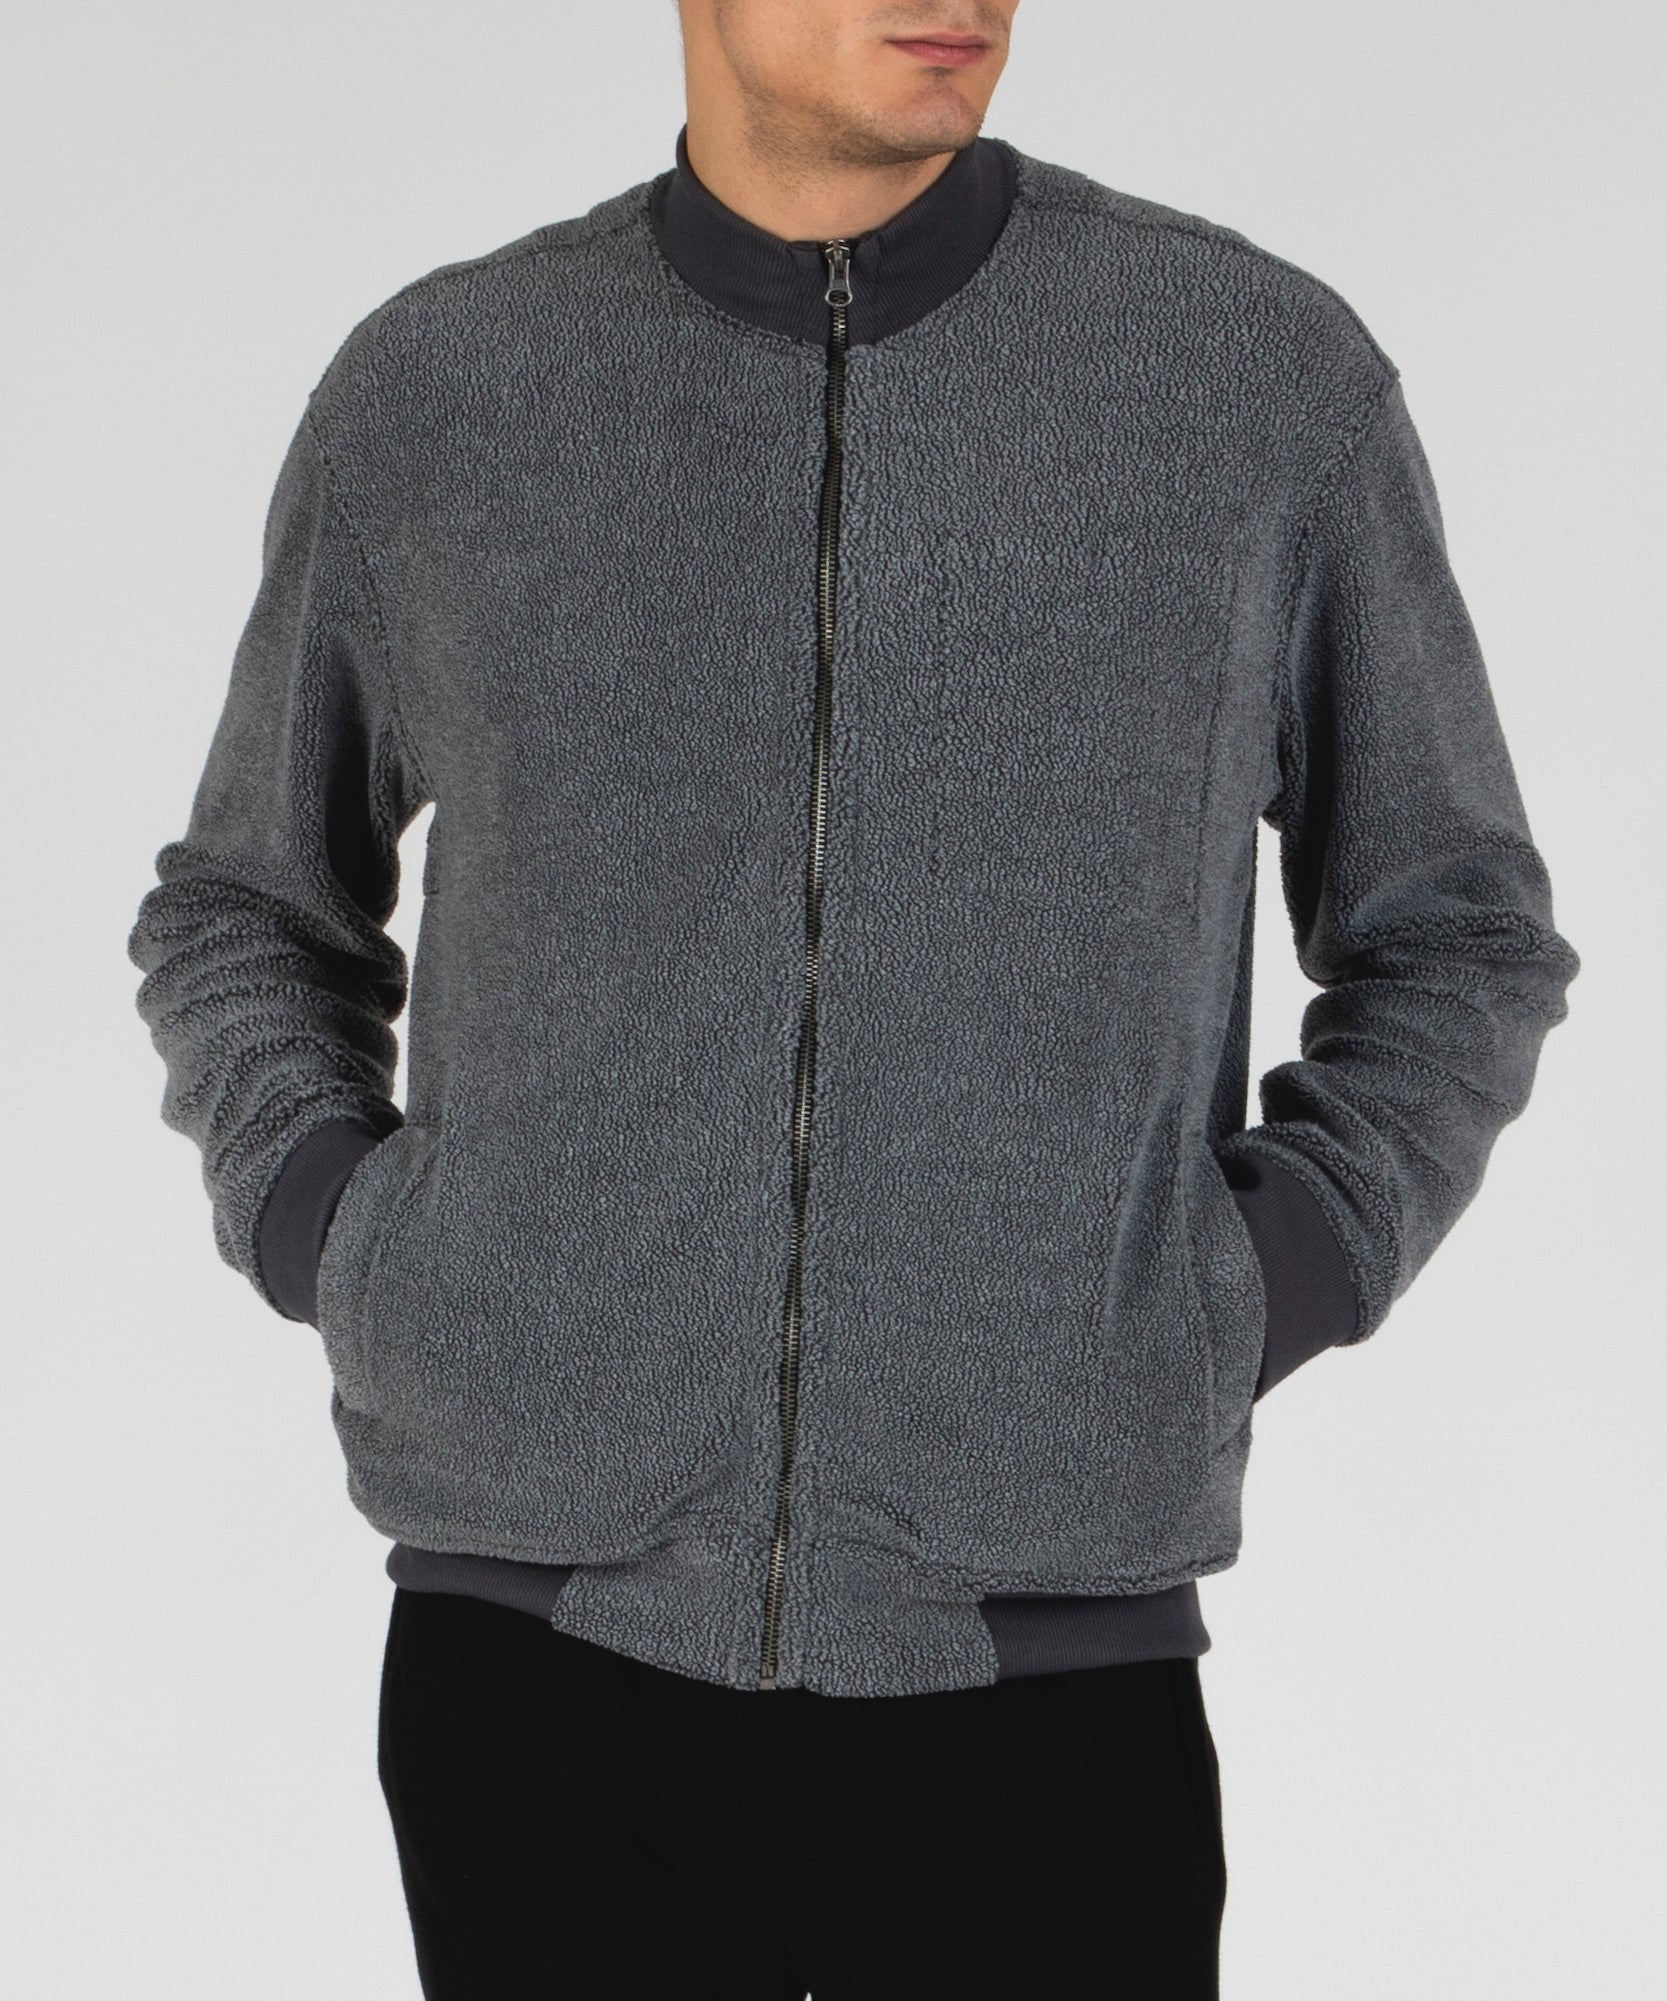 Charcoal French Terry Fleece Zip-Up Jacket - Men's Luxe Loungewear by ATM Anthony Thomas Melillo